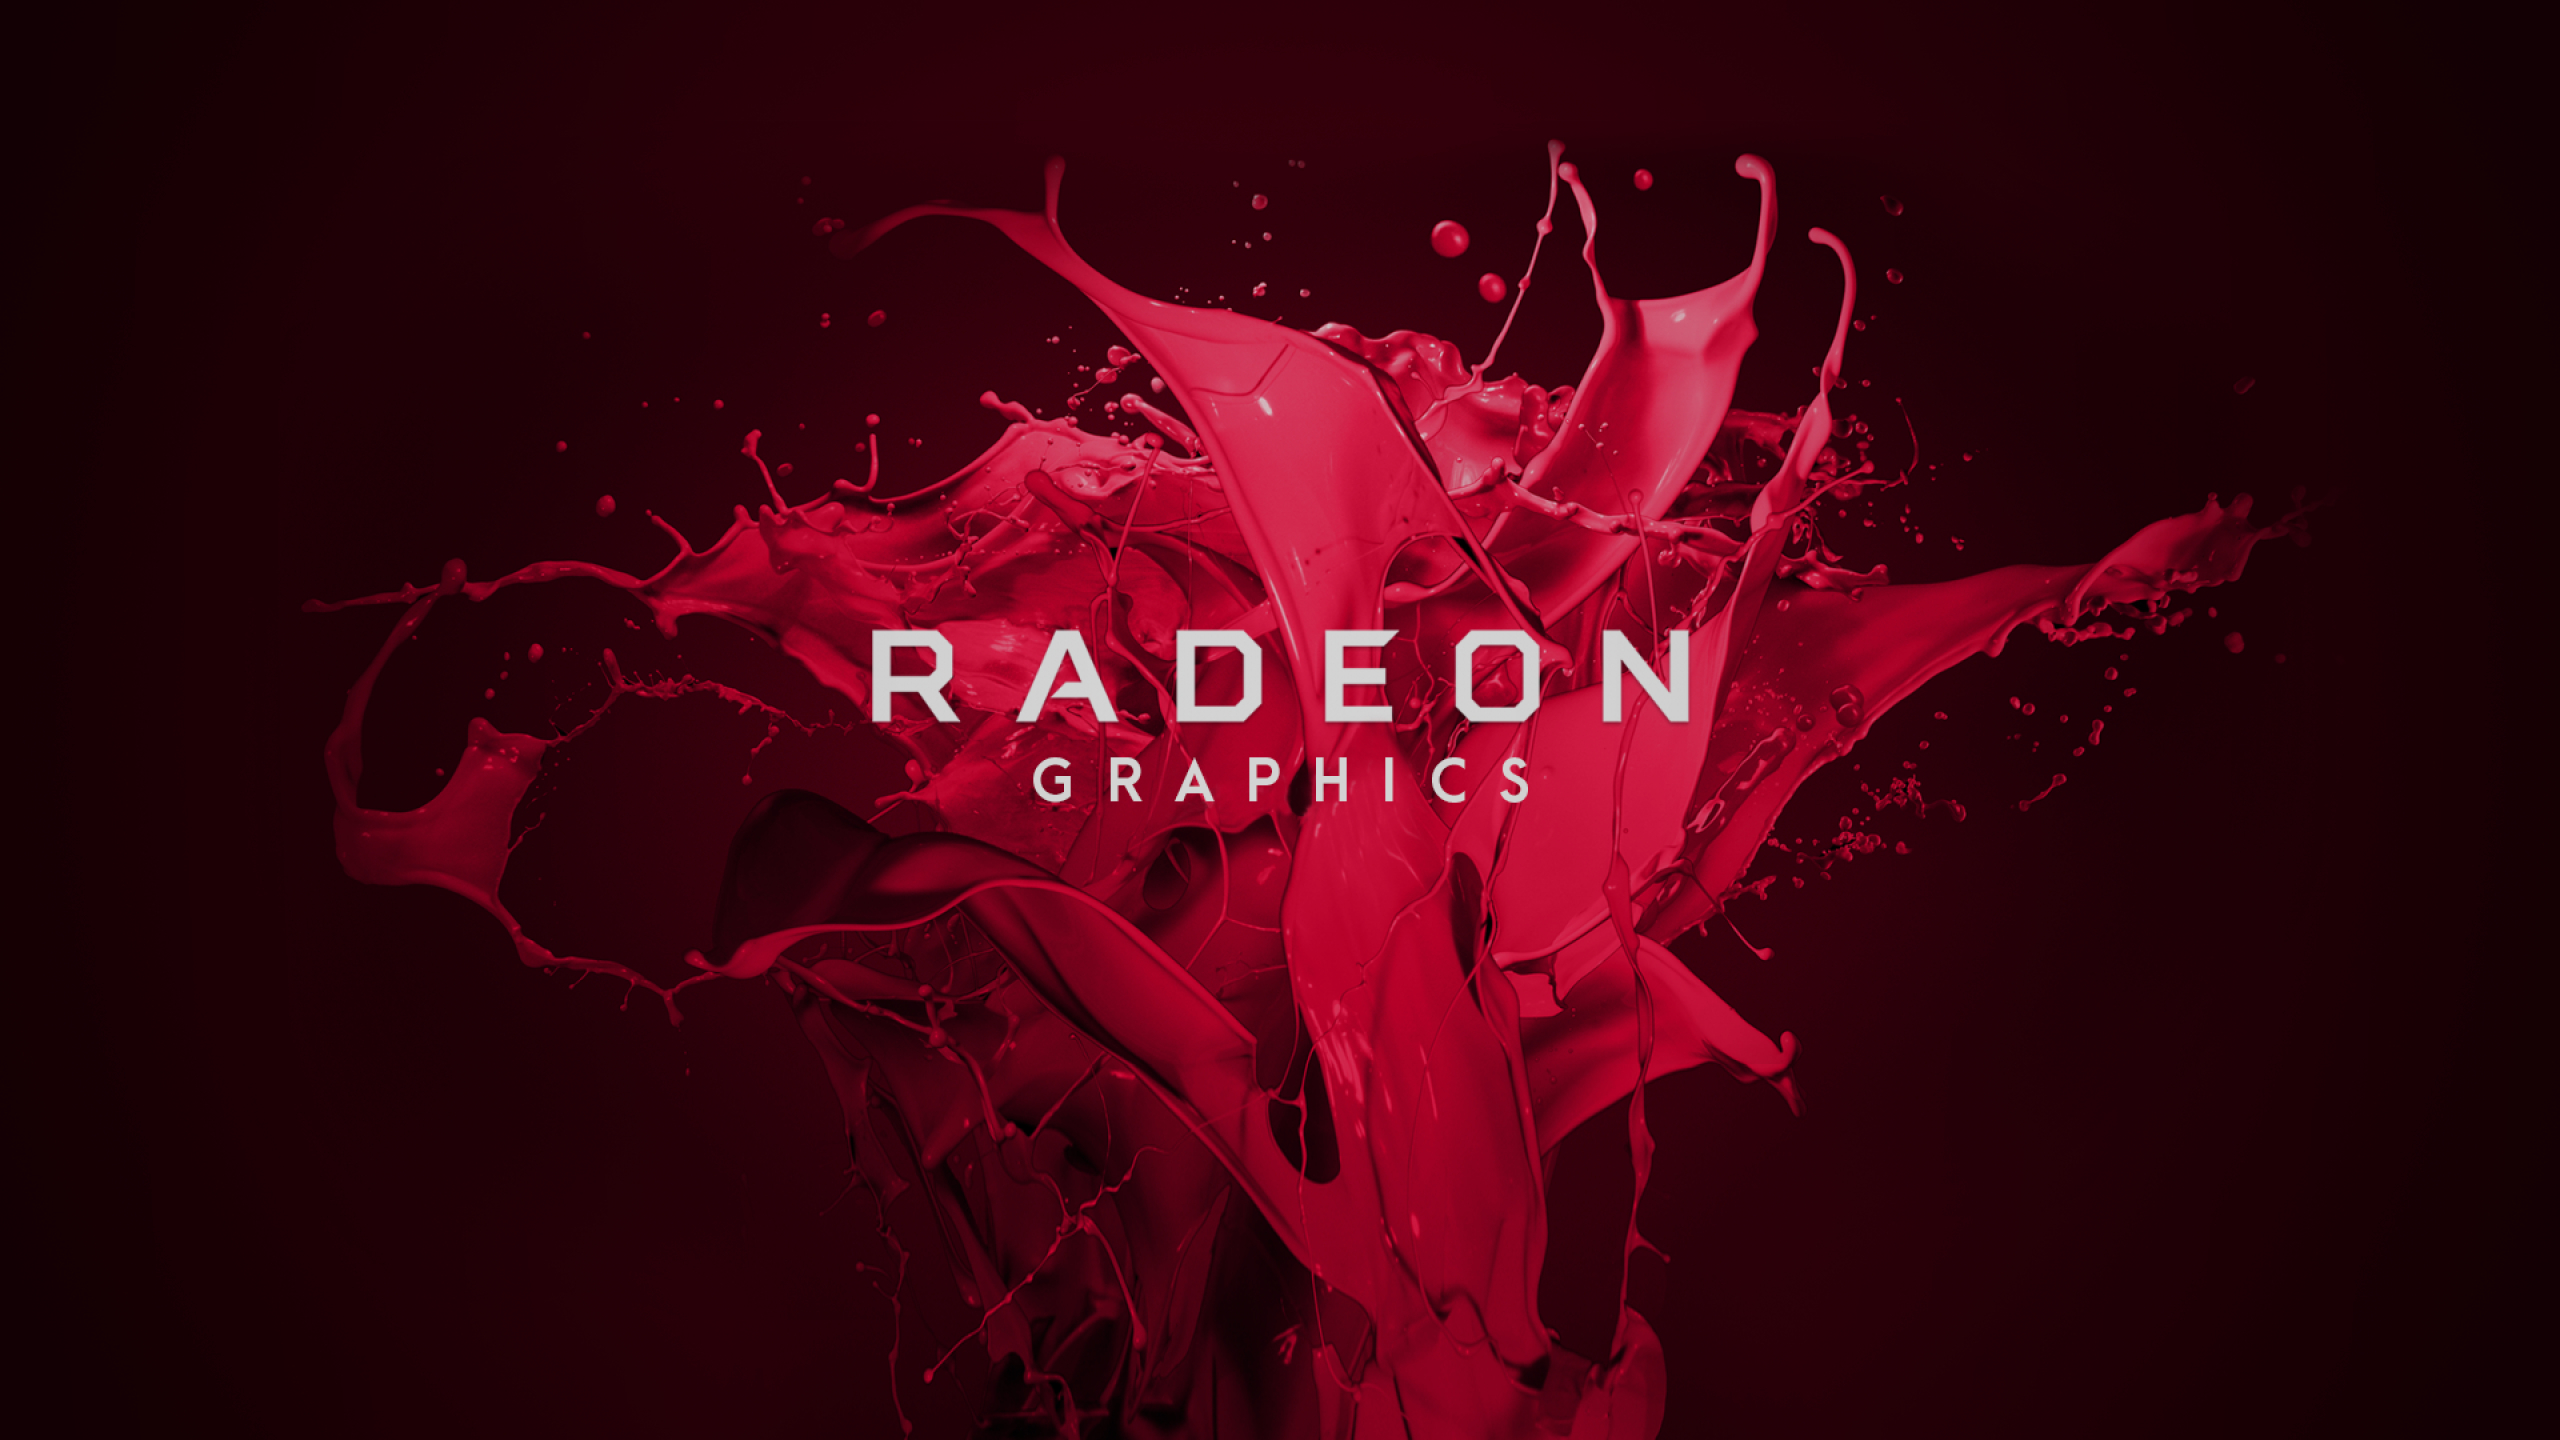 2560x1440 Amd Radeon Graphic 1440p Resolution Wallpaper Hd Hi Tech 4k Wallpapers Images Photos And Background